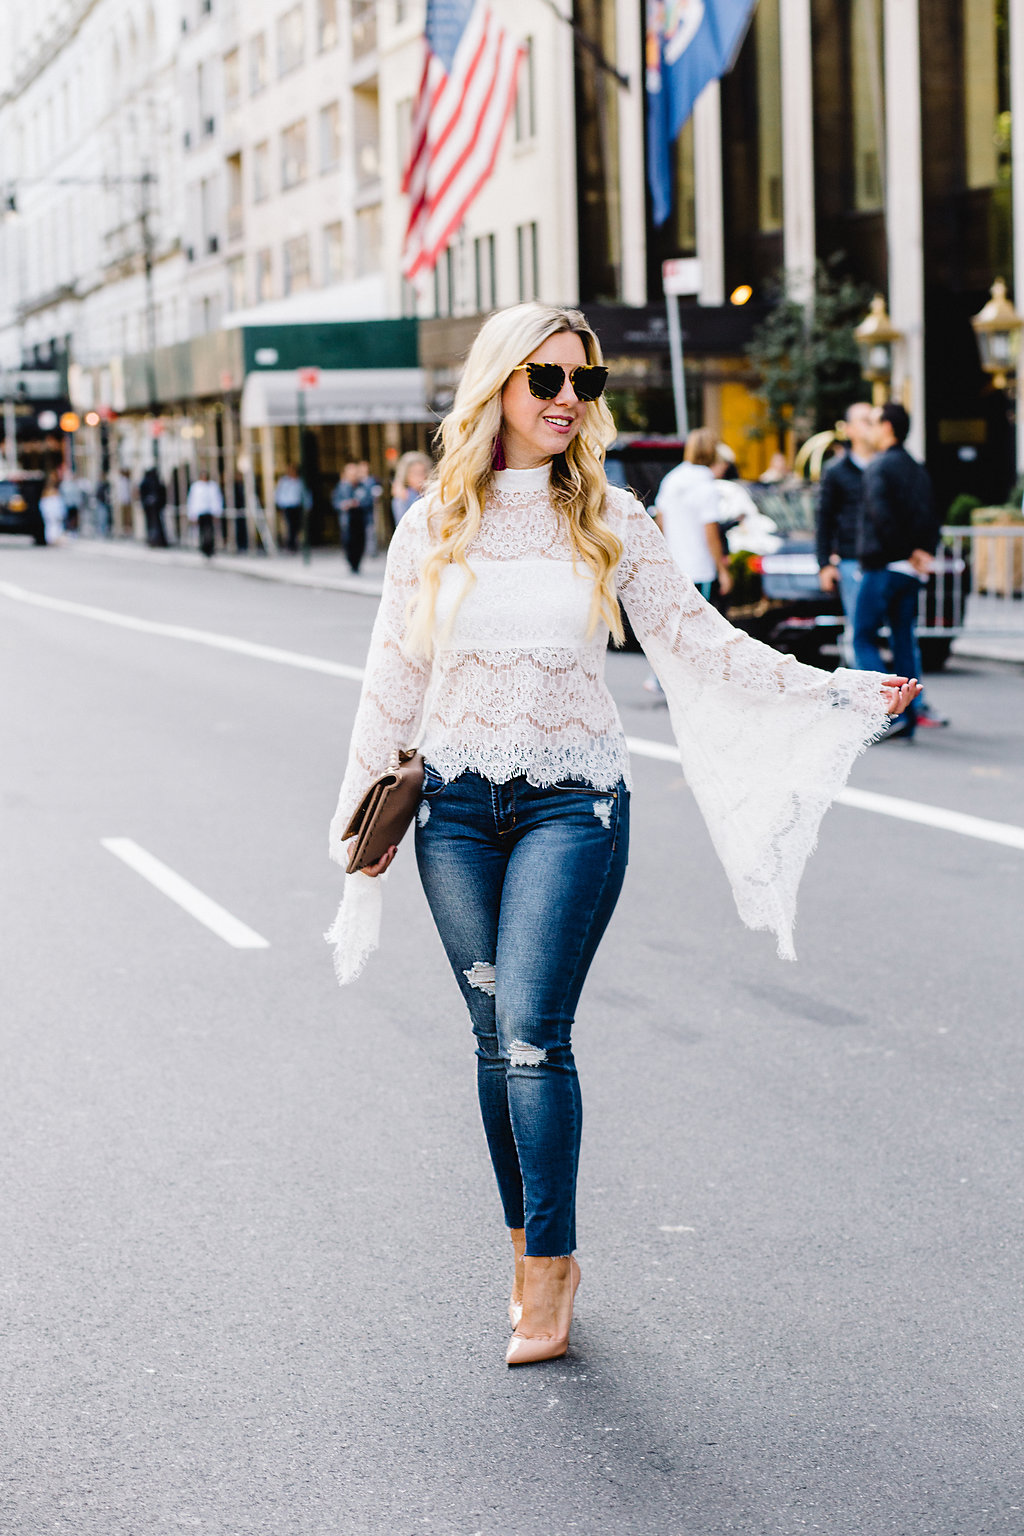 Lace + Bell Sleeves = The Perfect Fall Top